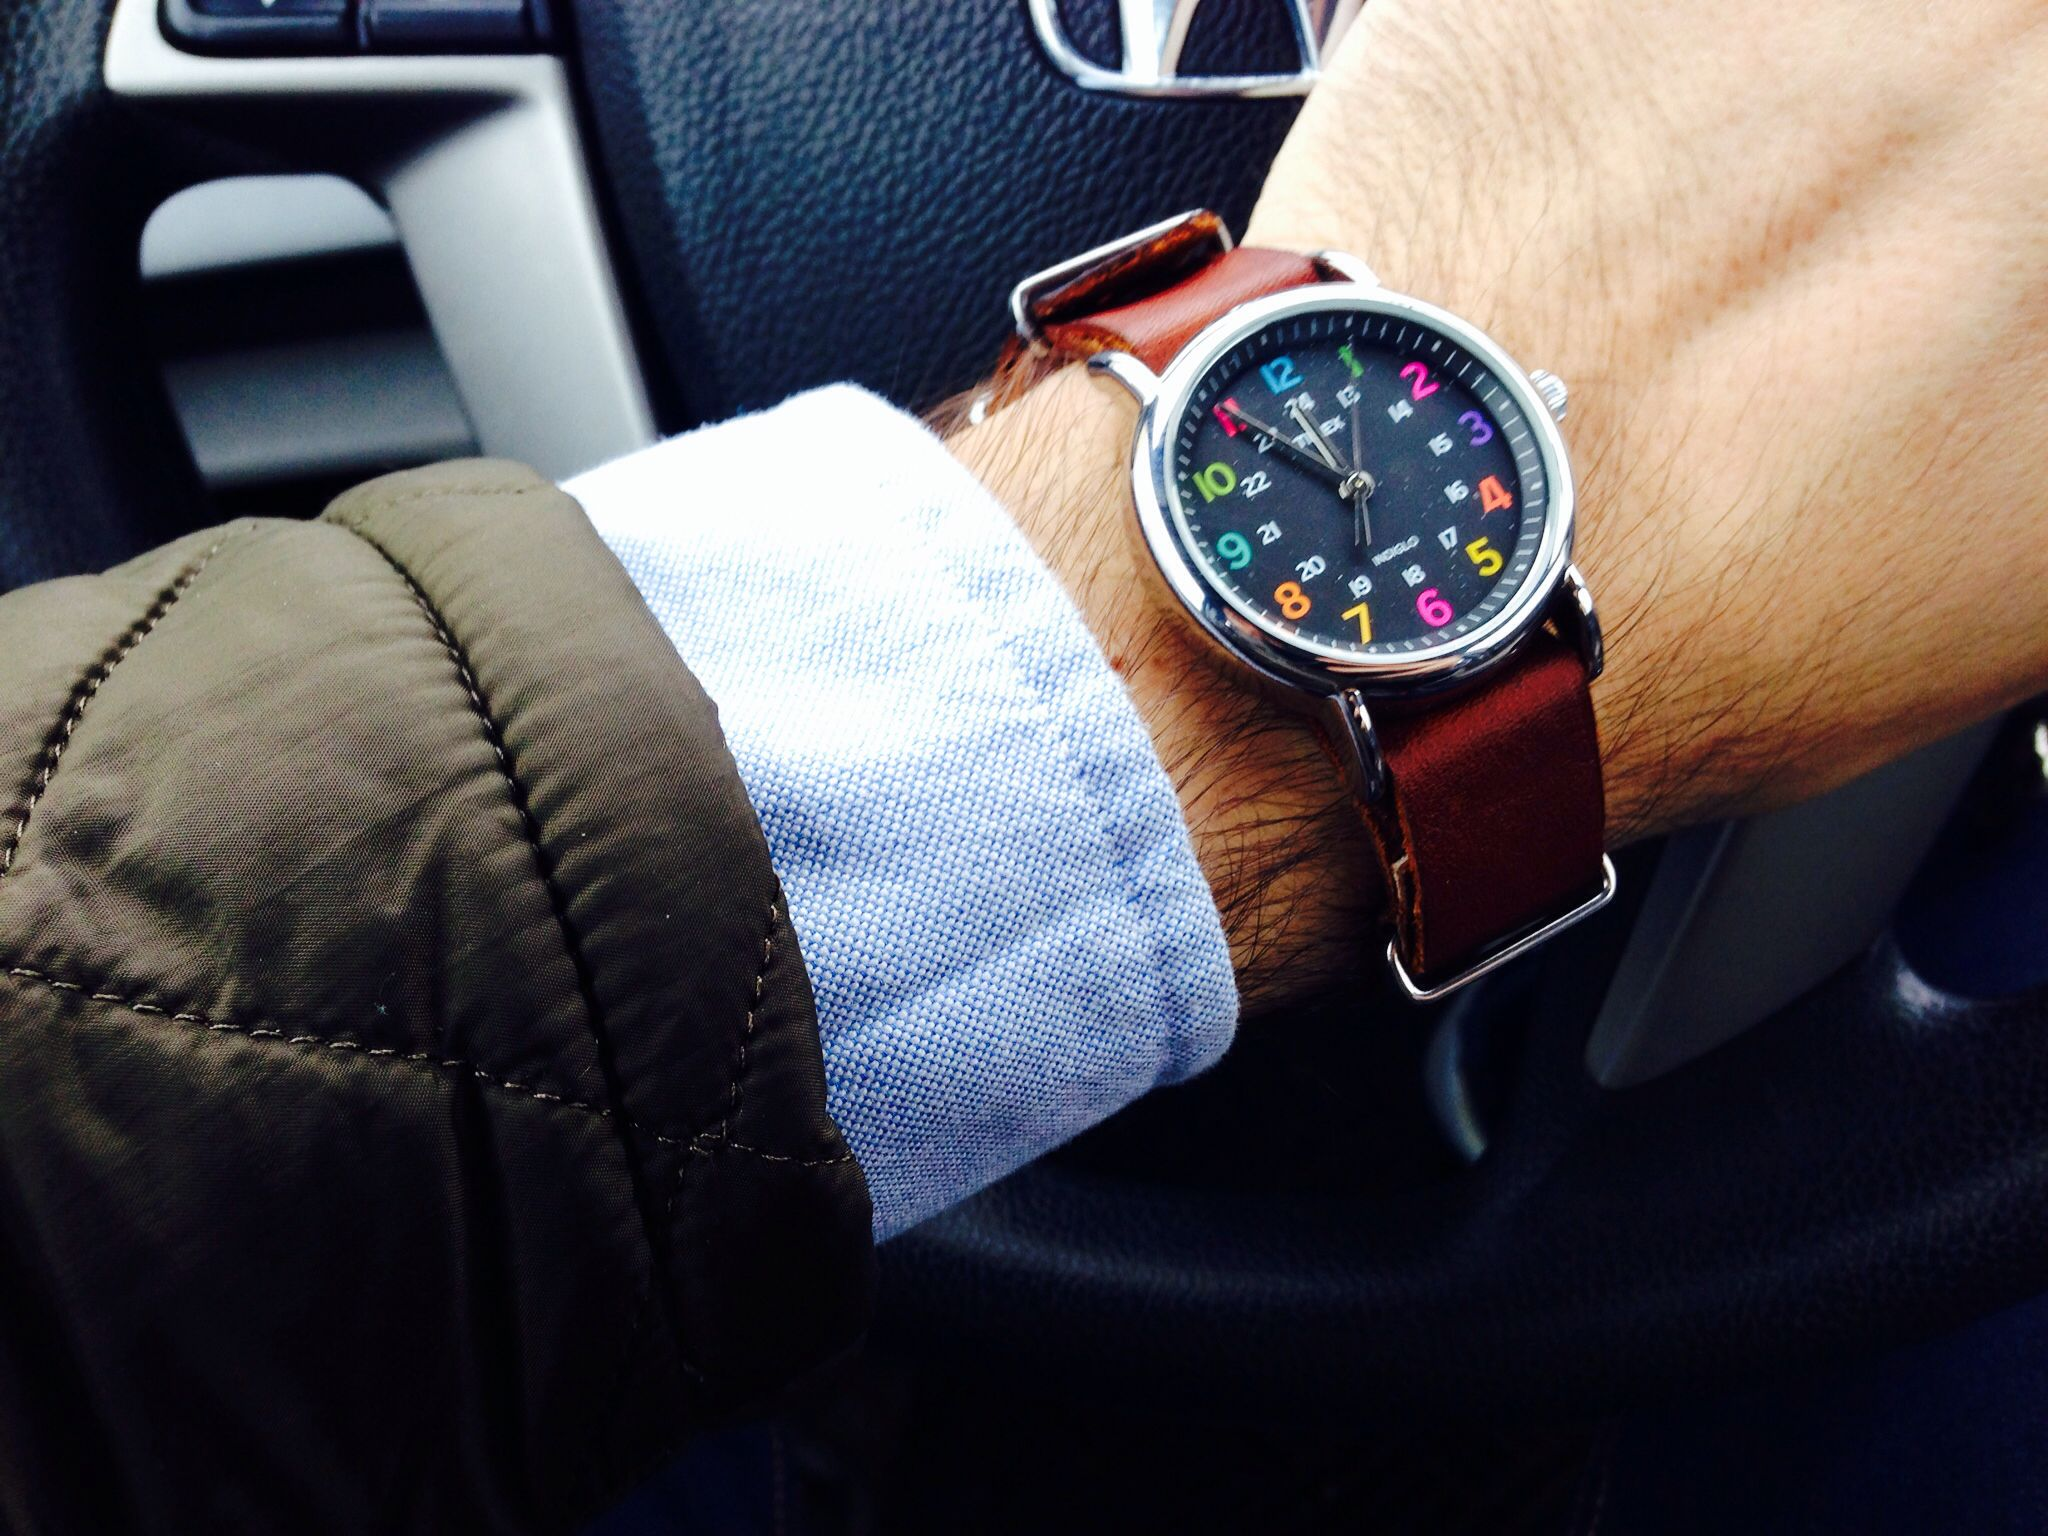 Timex Weekender Simple Yet Classy Dress It Up With A